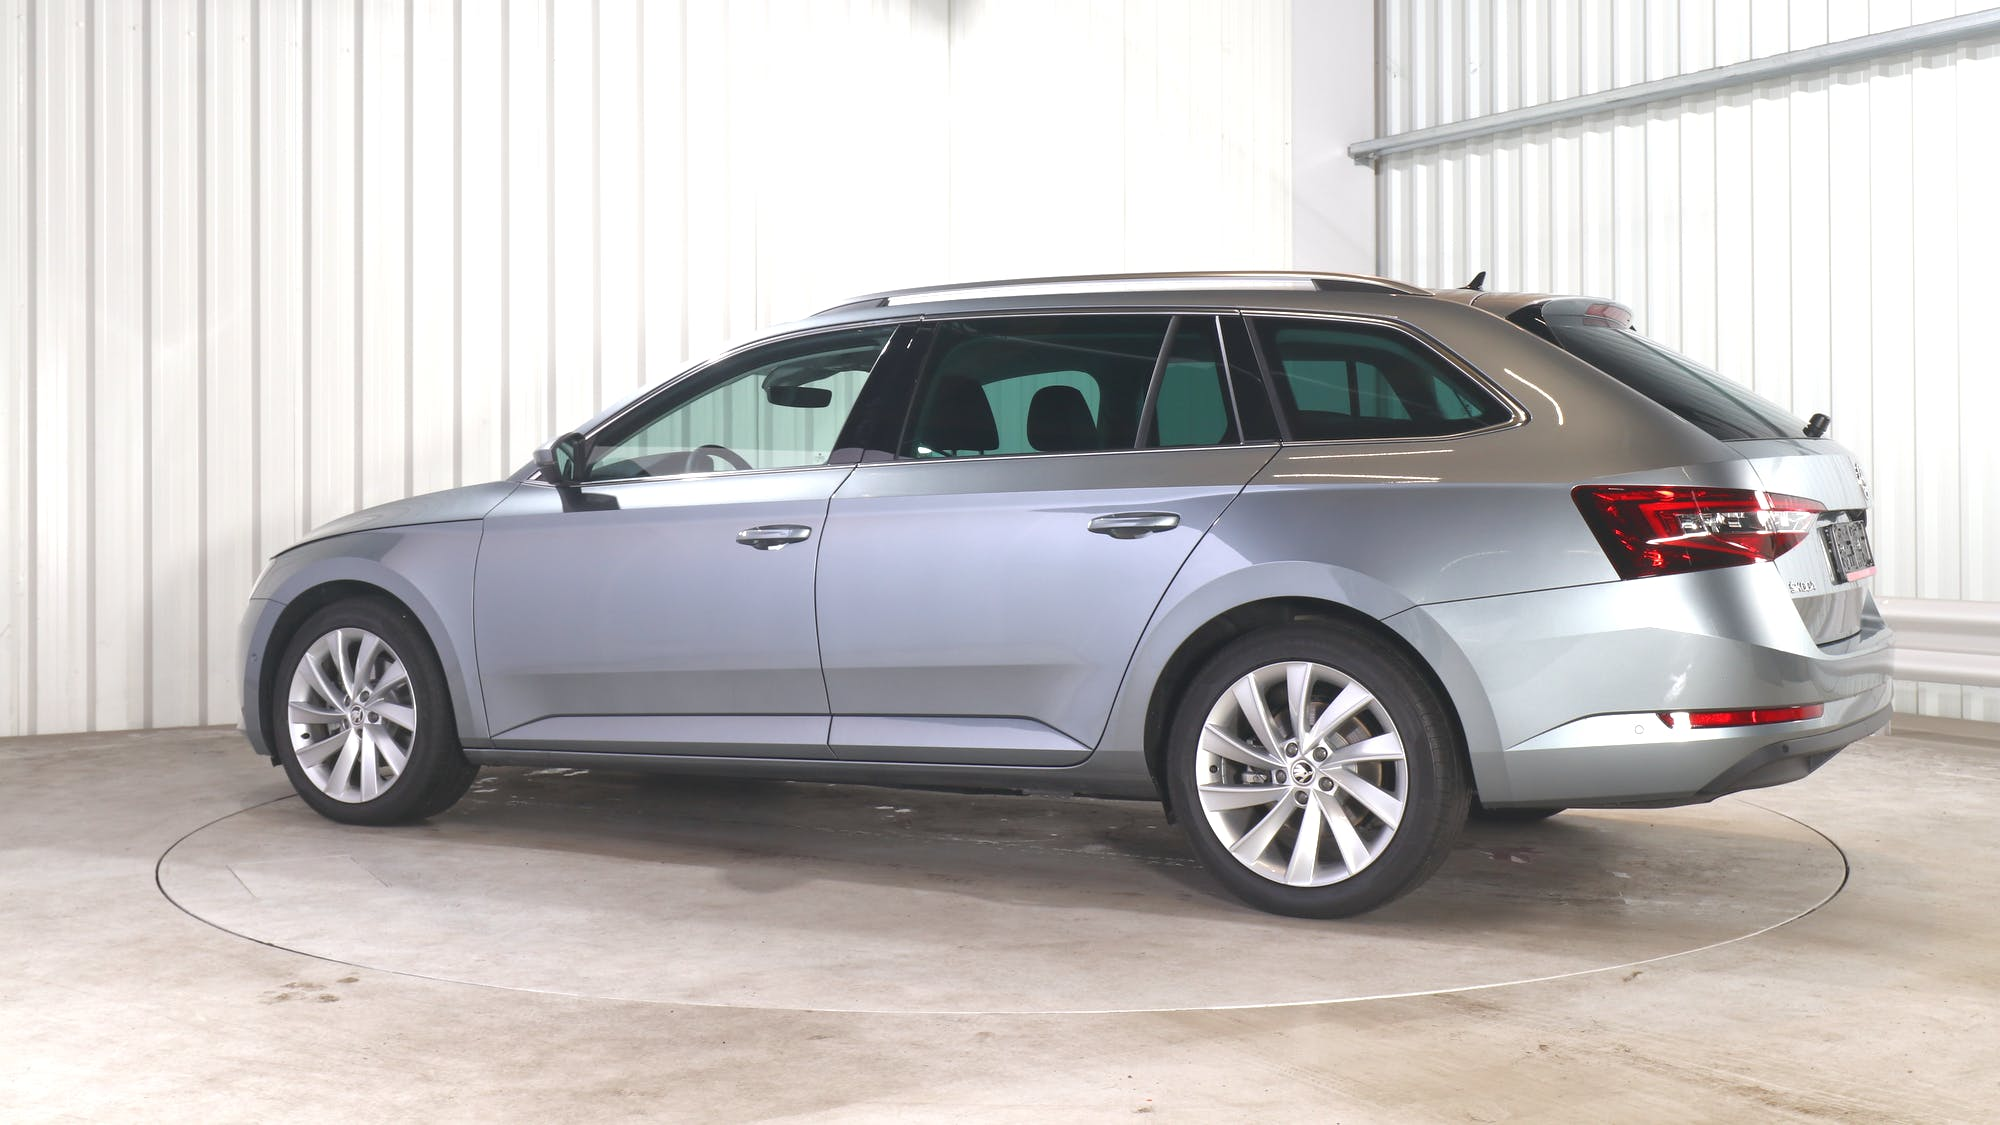 SKODA SUPERB COMBI leasing exterior 3